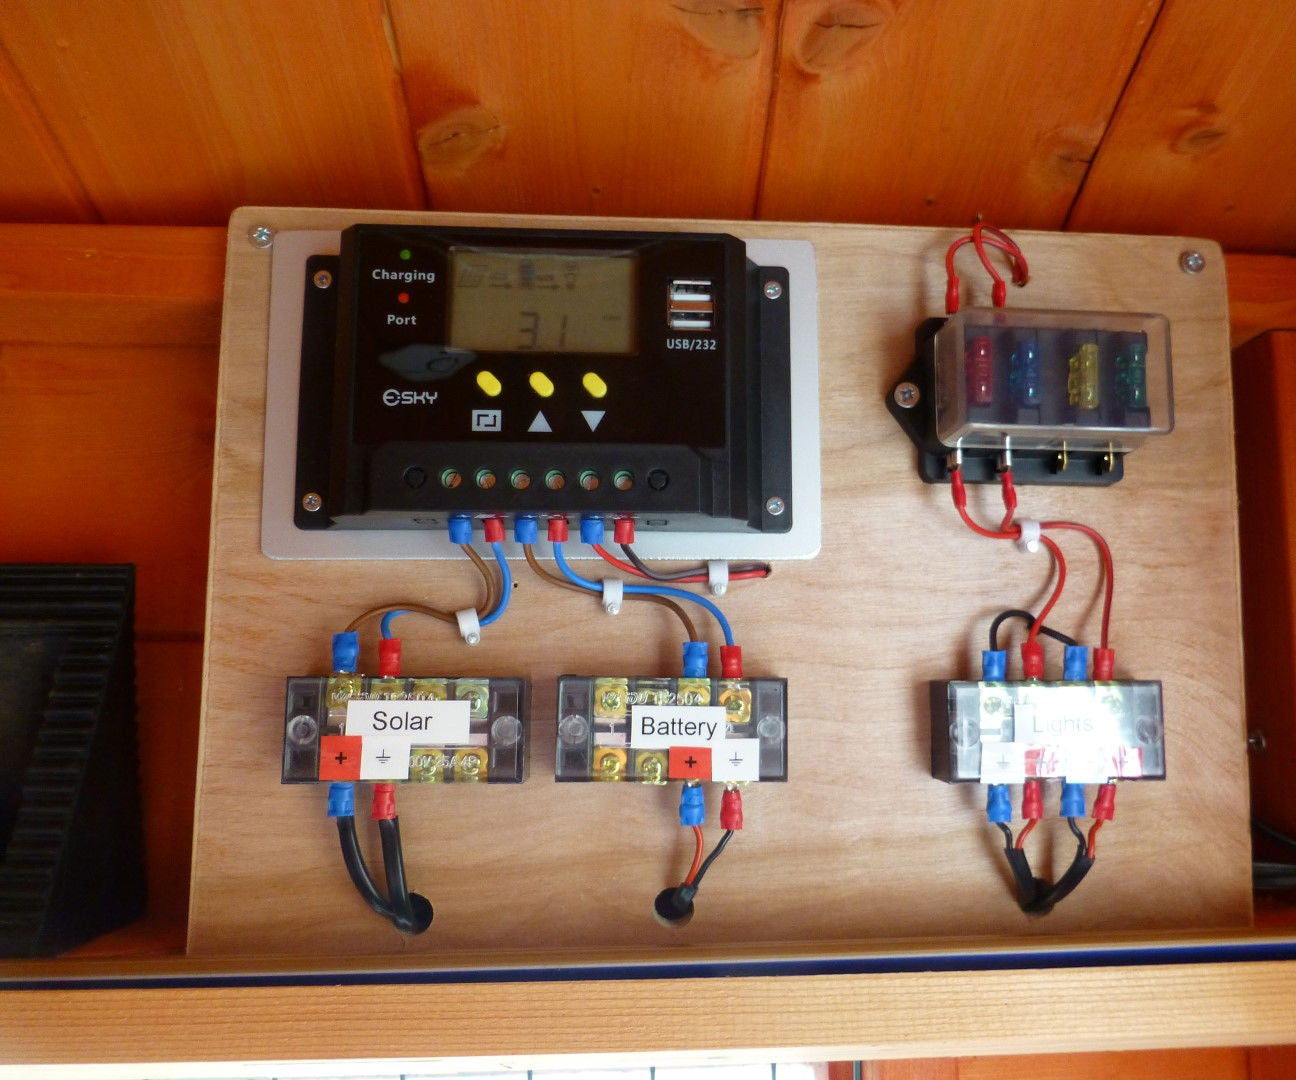 fuse box in smart car shed 12v solar lighting system 5 steps  with pictures   shed 12v solar lighting system 5 steps  with pictures